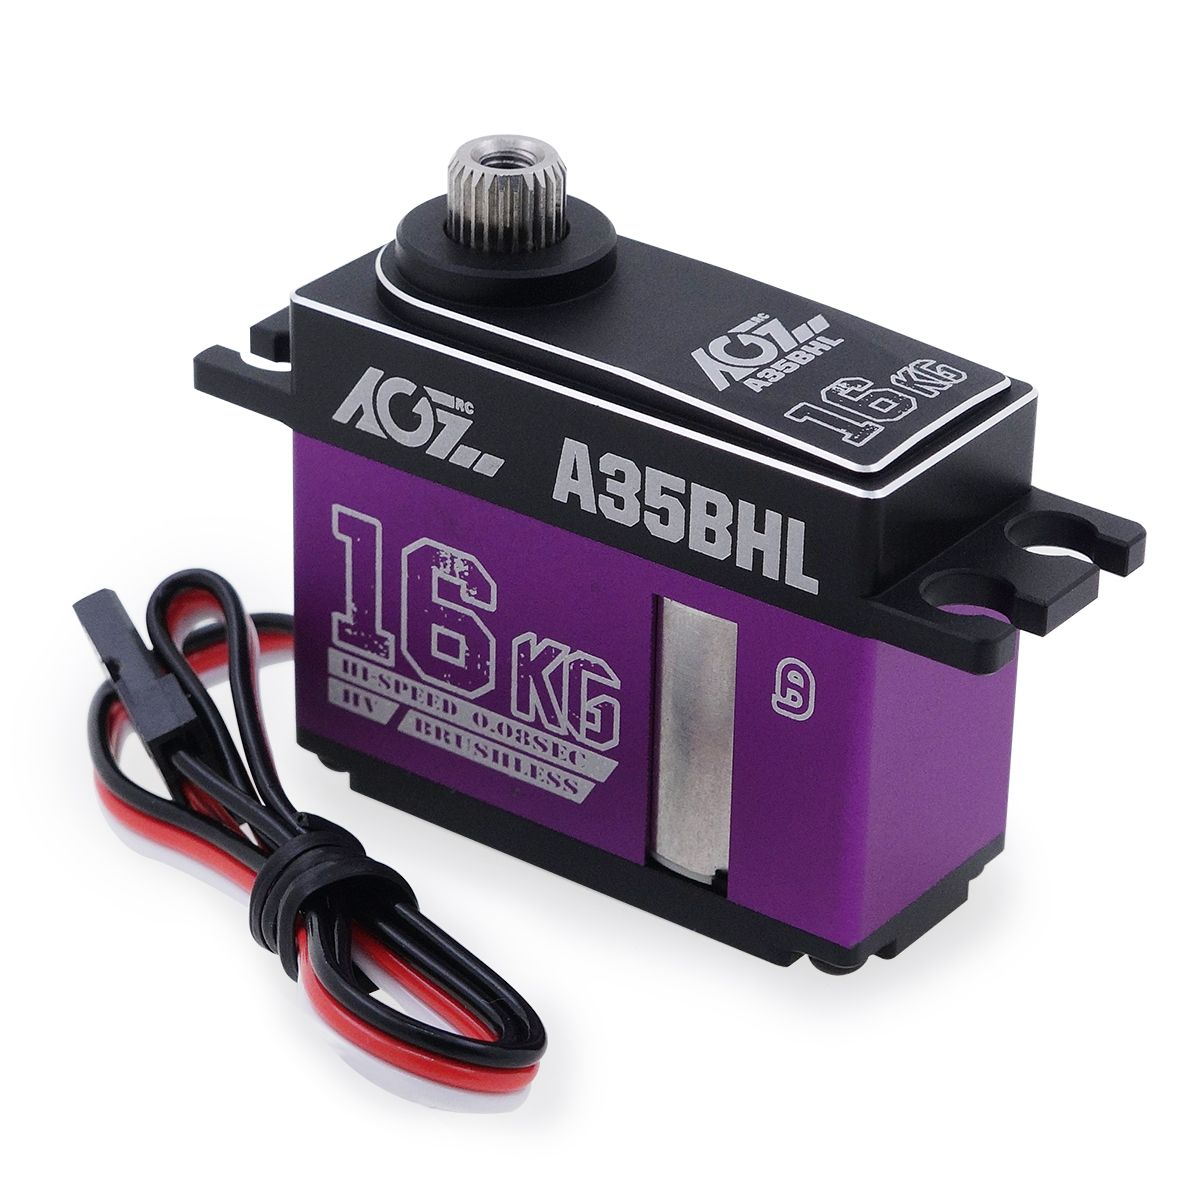 AGFRC A35BHL16KLG Super Torque 0.08Sec HV Programmable Digital Middle Size Brushless Servo for RC Helicopter Glider Aircraft Robot Car etc.